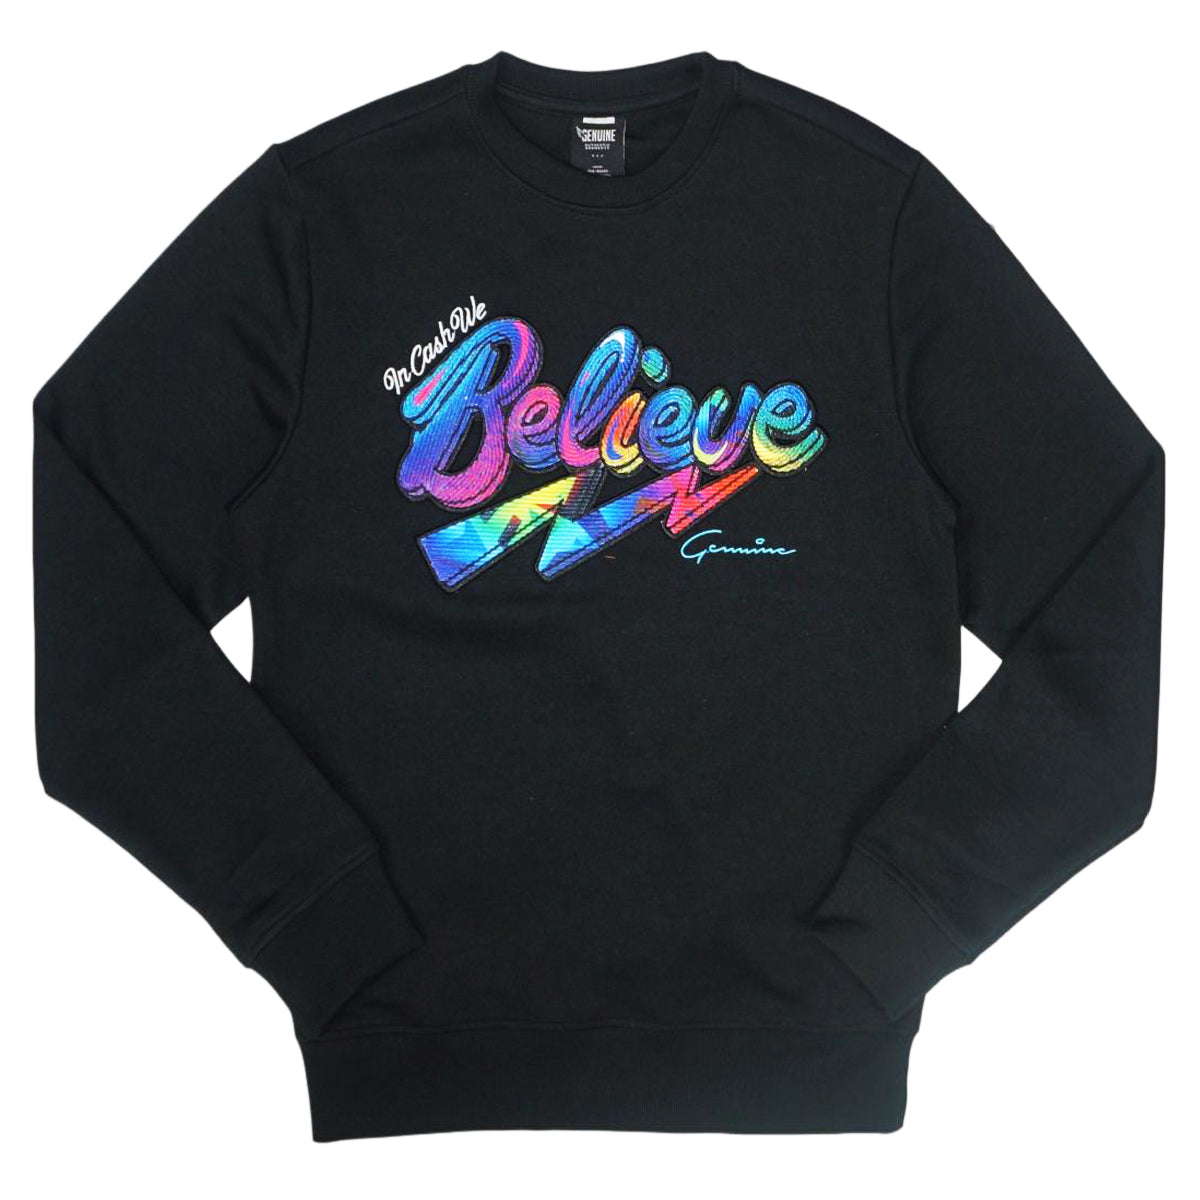 In Cash We Believe Crewneck (Black)/D?